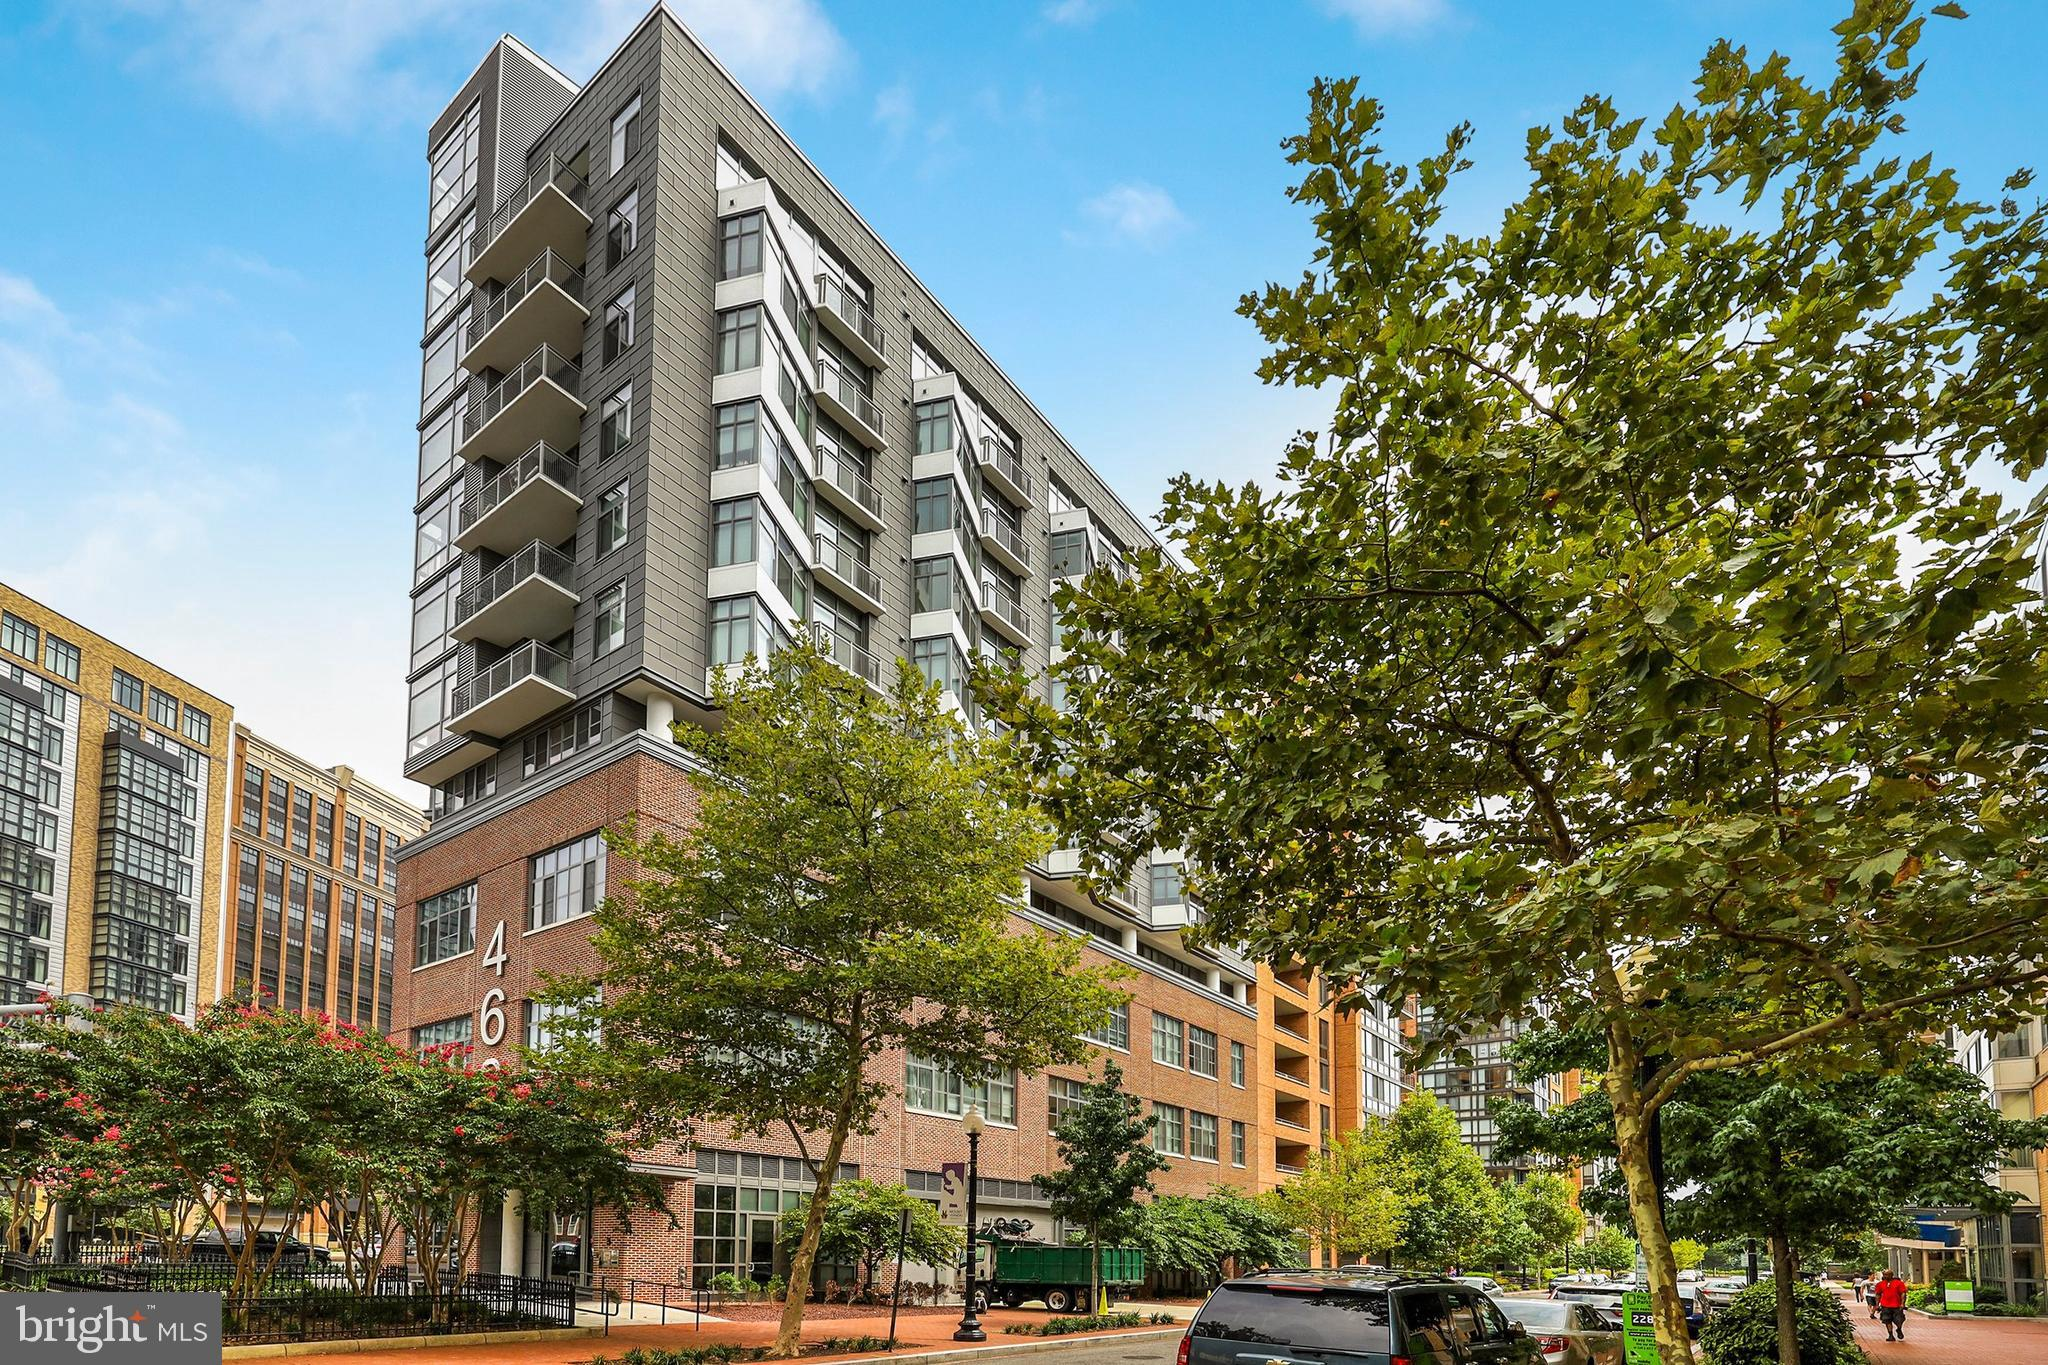 One bedroom in sought after Mt. Vernon Triangle! Top-to-bottom AND bottom to top black out shades with lifetime warranty. Walk-in-Closet. Unit features Nest thermostat, carbon monoxide, and smoke detector. Entire unit freshly painted. In unit washer and dryer. 13+ foot ceilings! Rooftop deck with fire pit, BBQ grill, views and a lounge/party room. Large storage cage included. Only steps to Mt. Vernon metro, Safeway, and plenty of shops and restaurants.